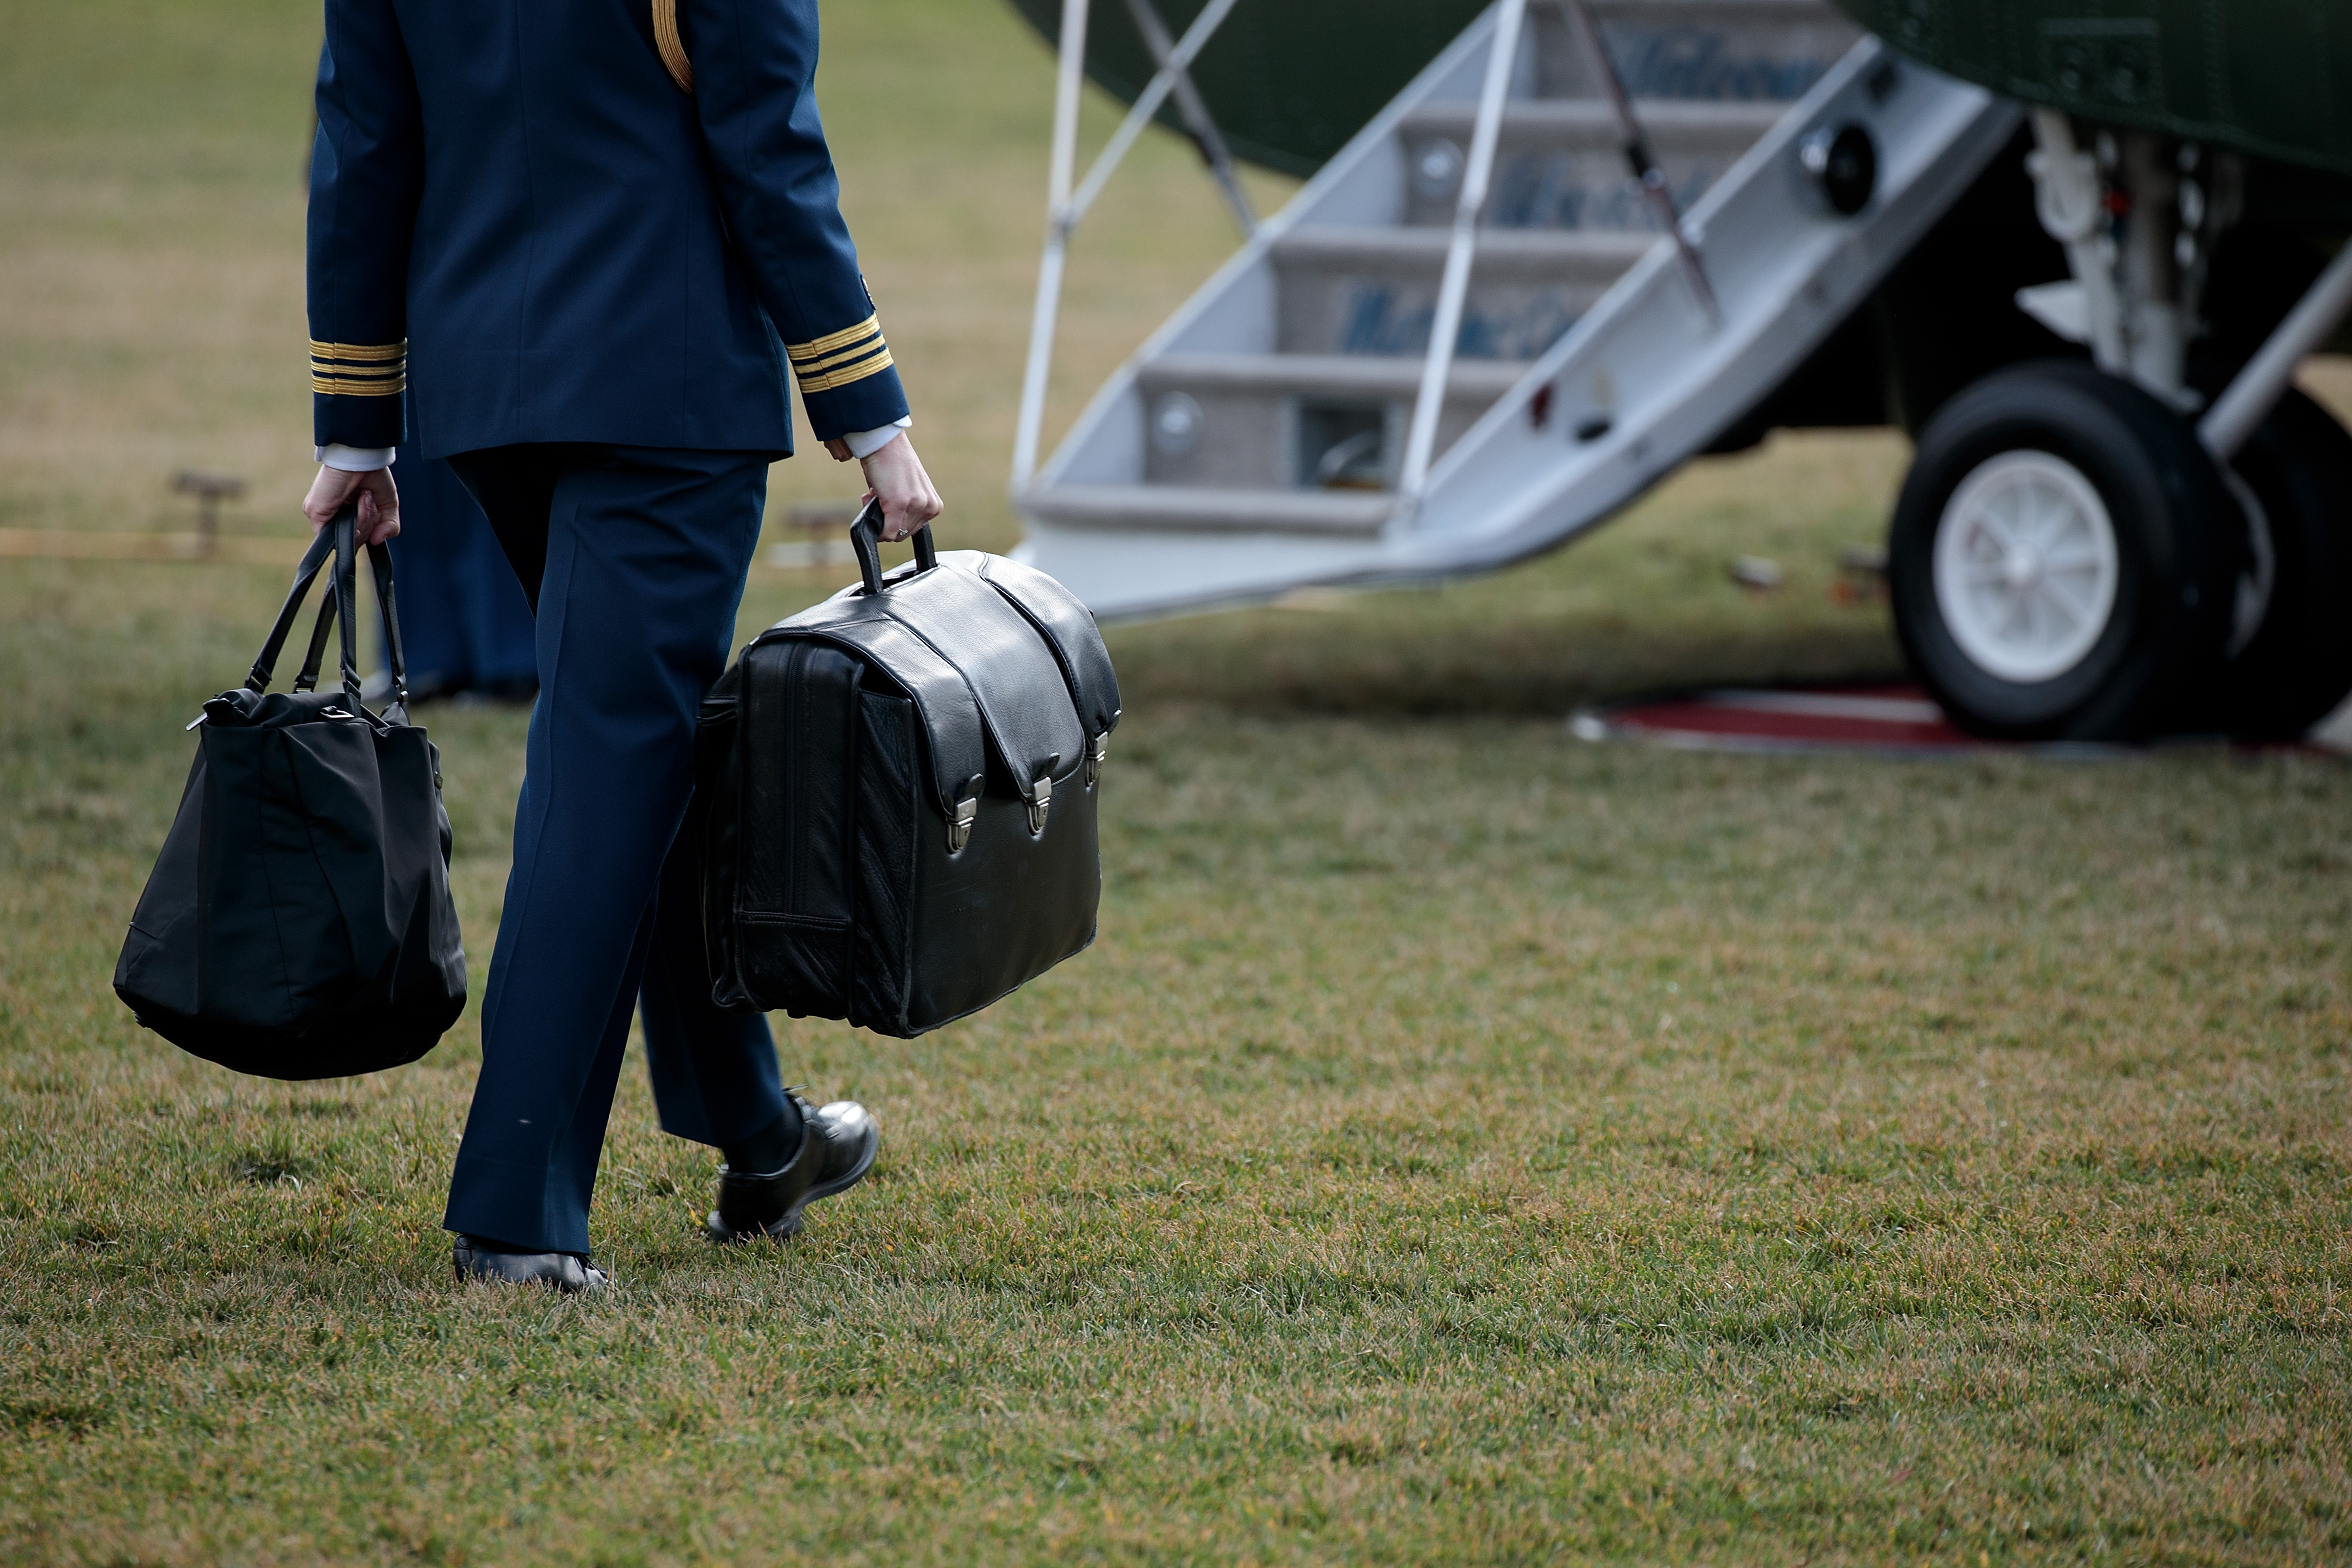 An officer carries a large black briefcase and walks toward an airplane